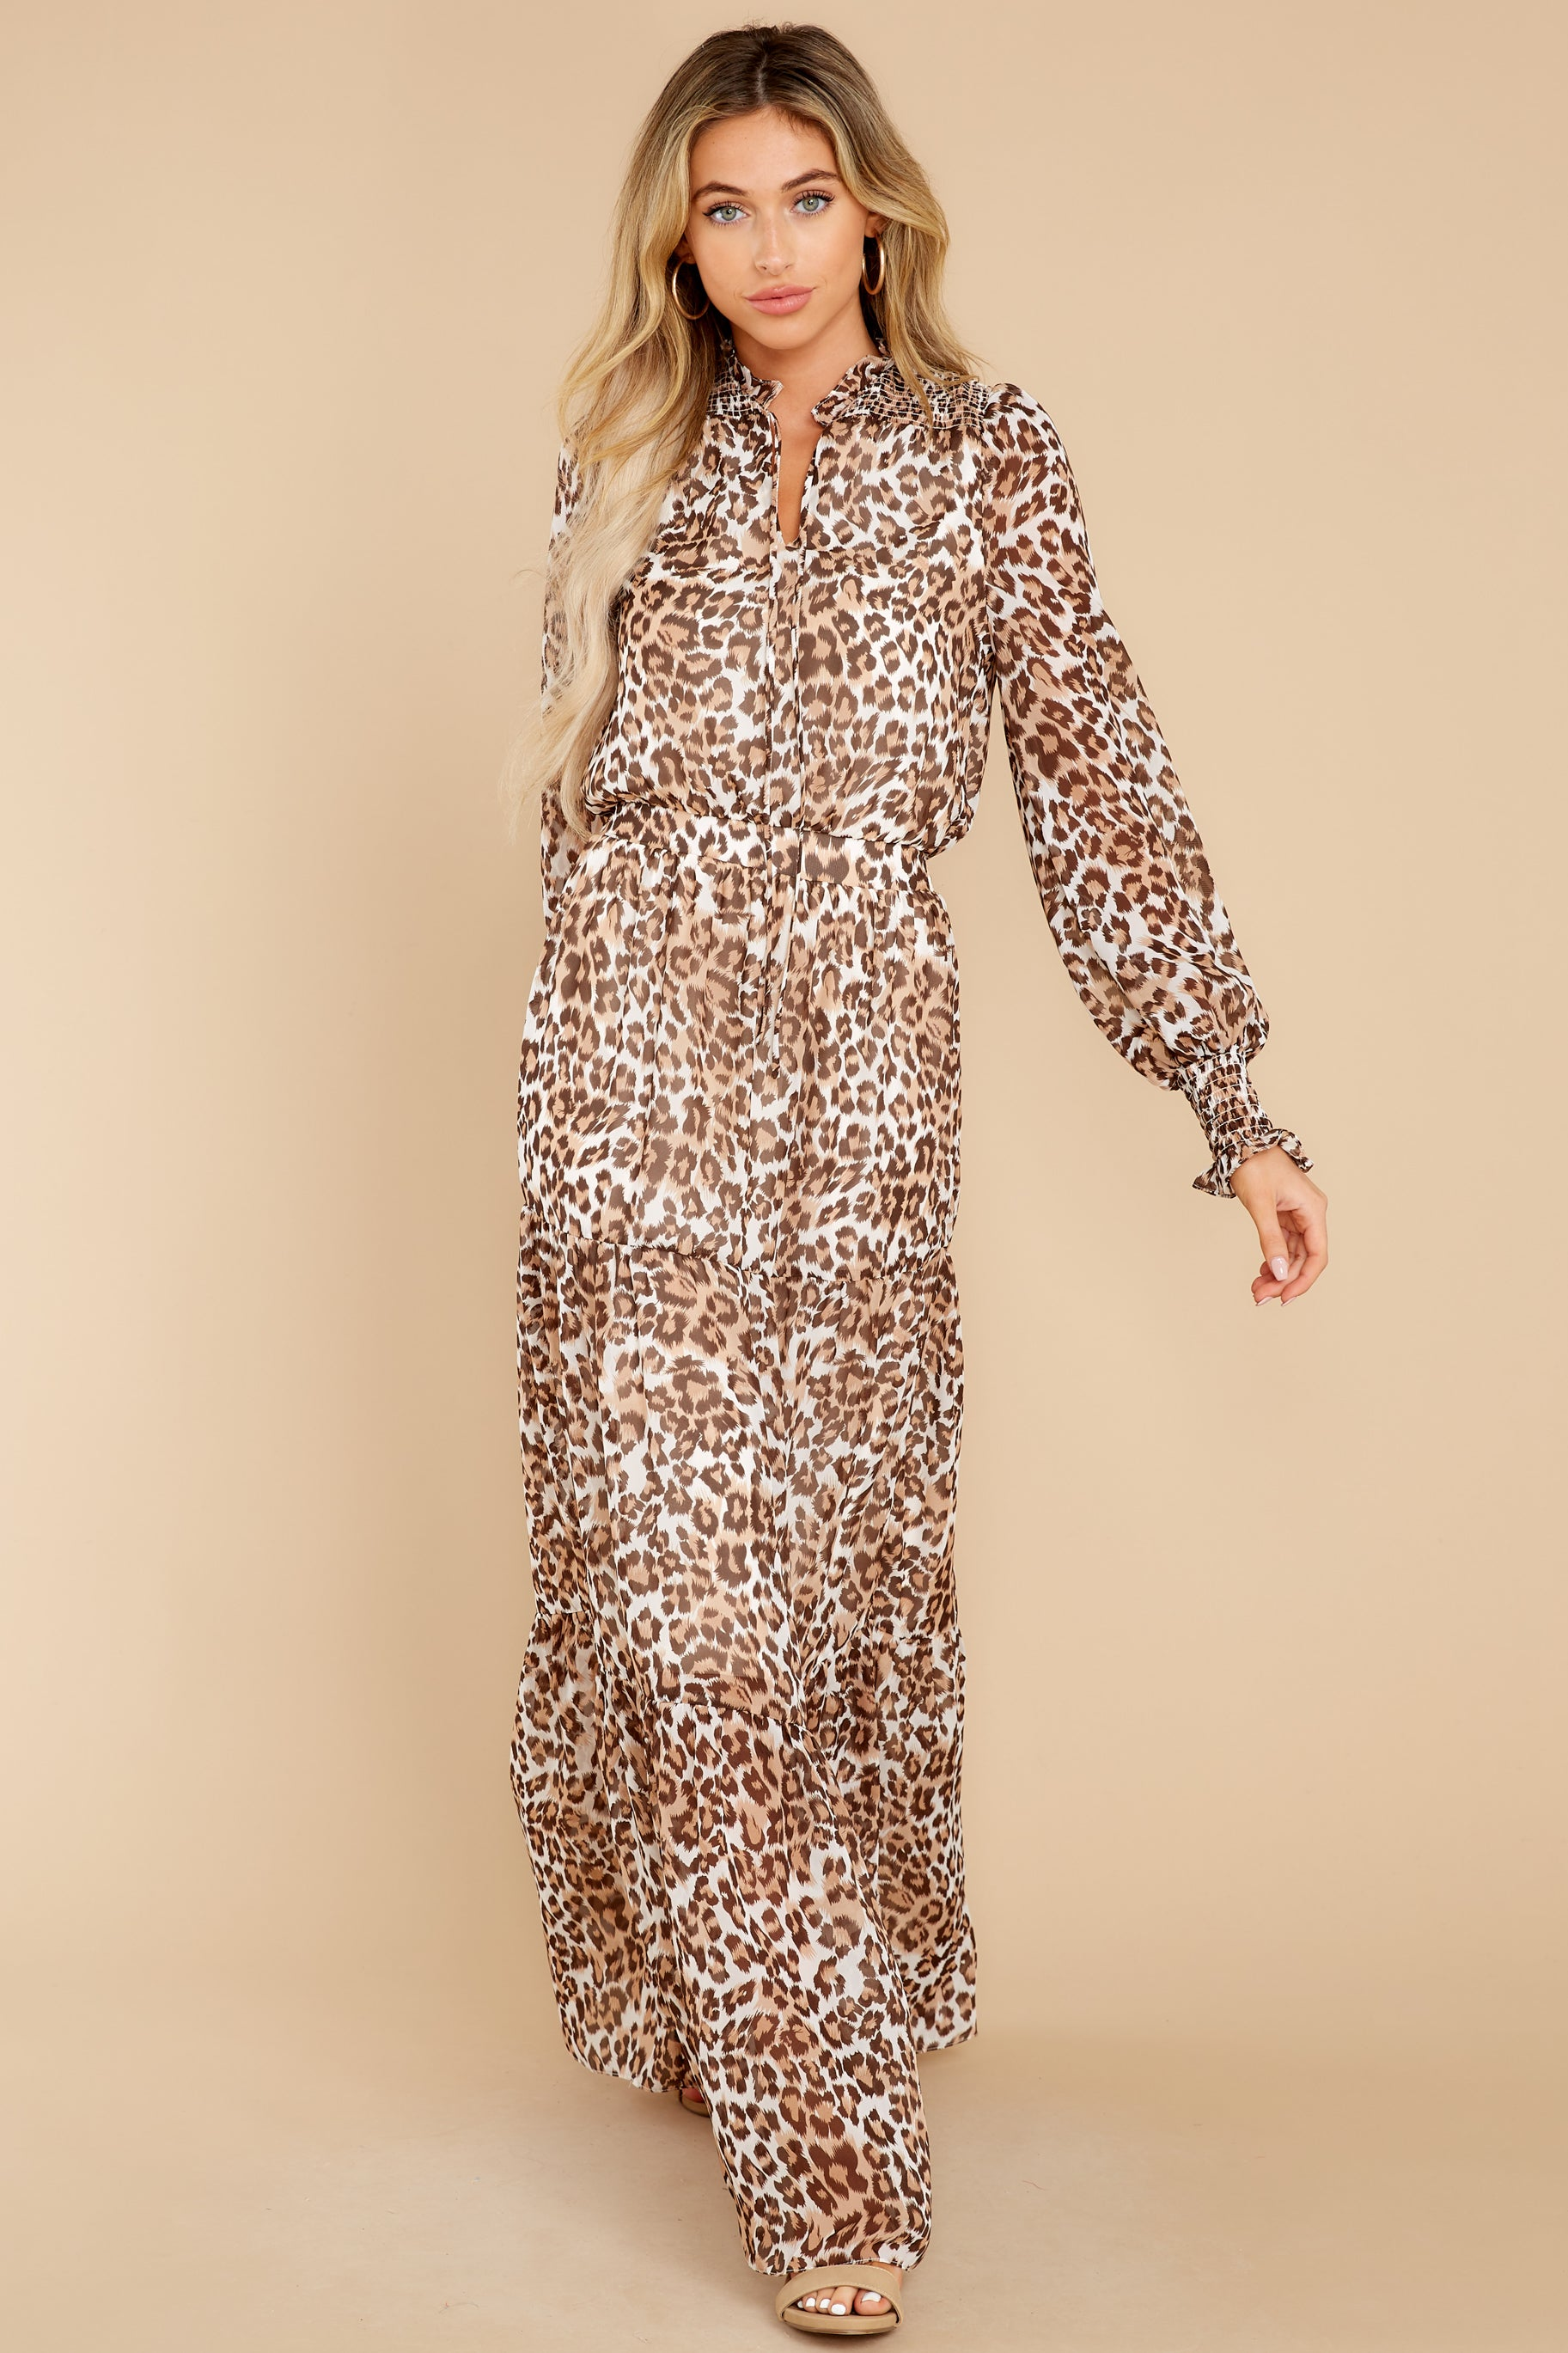 2 Steady As She Goes Leopard Print Maxi Dress at reddress.com